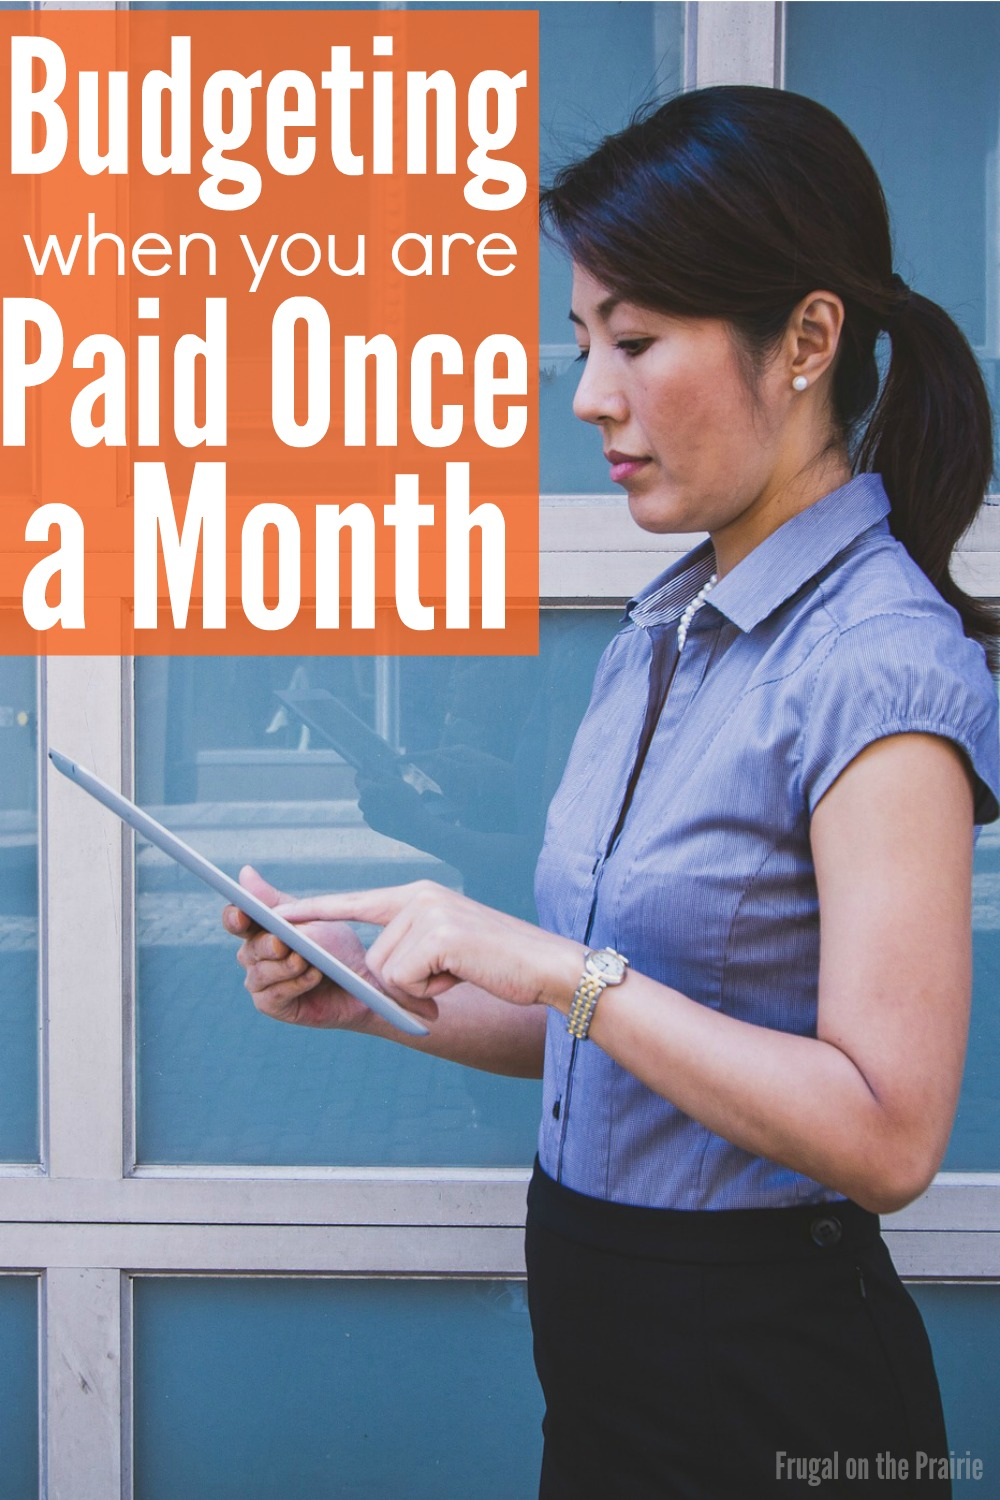 Are you only paid once a month? If so, then you know how hard it can be to make your paycheck last till the end of the month. Here are some helpful tips!